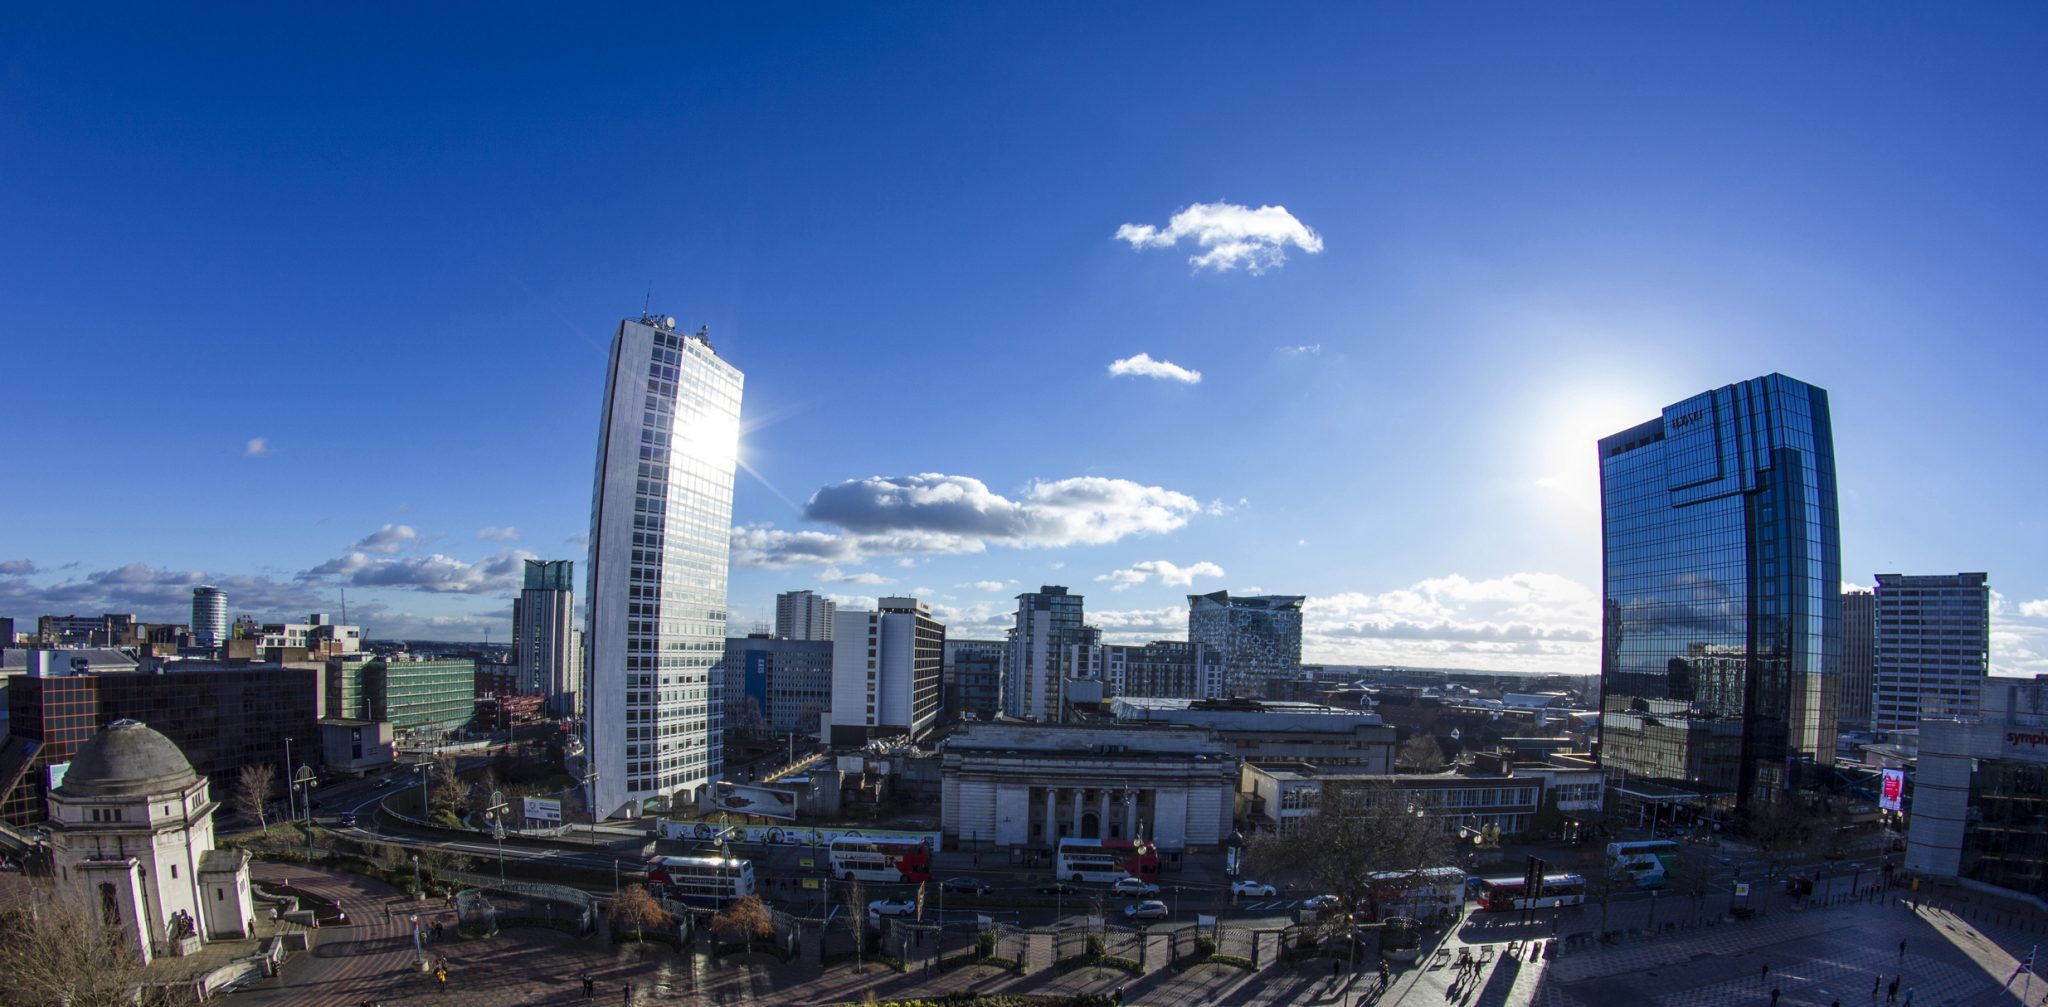 Hundreds of jobs coming to Birmingham as city starts economic recovery